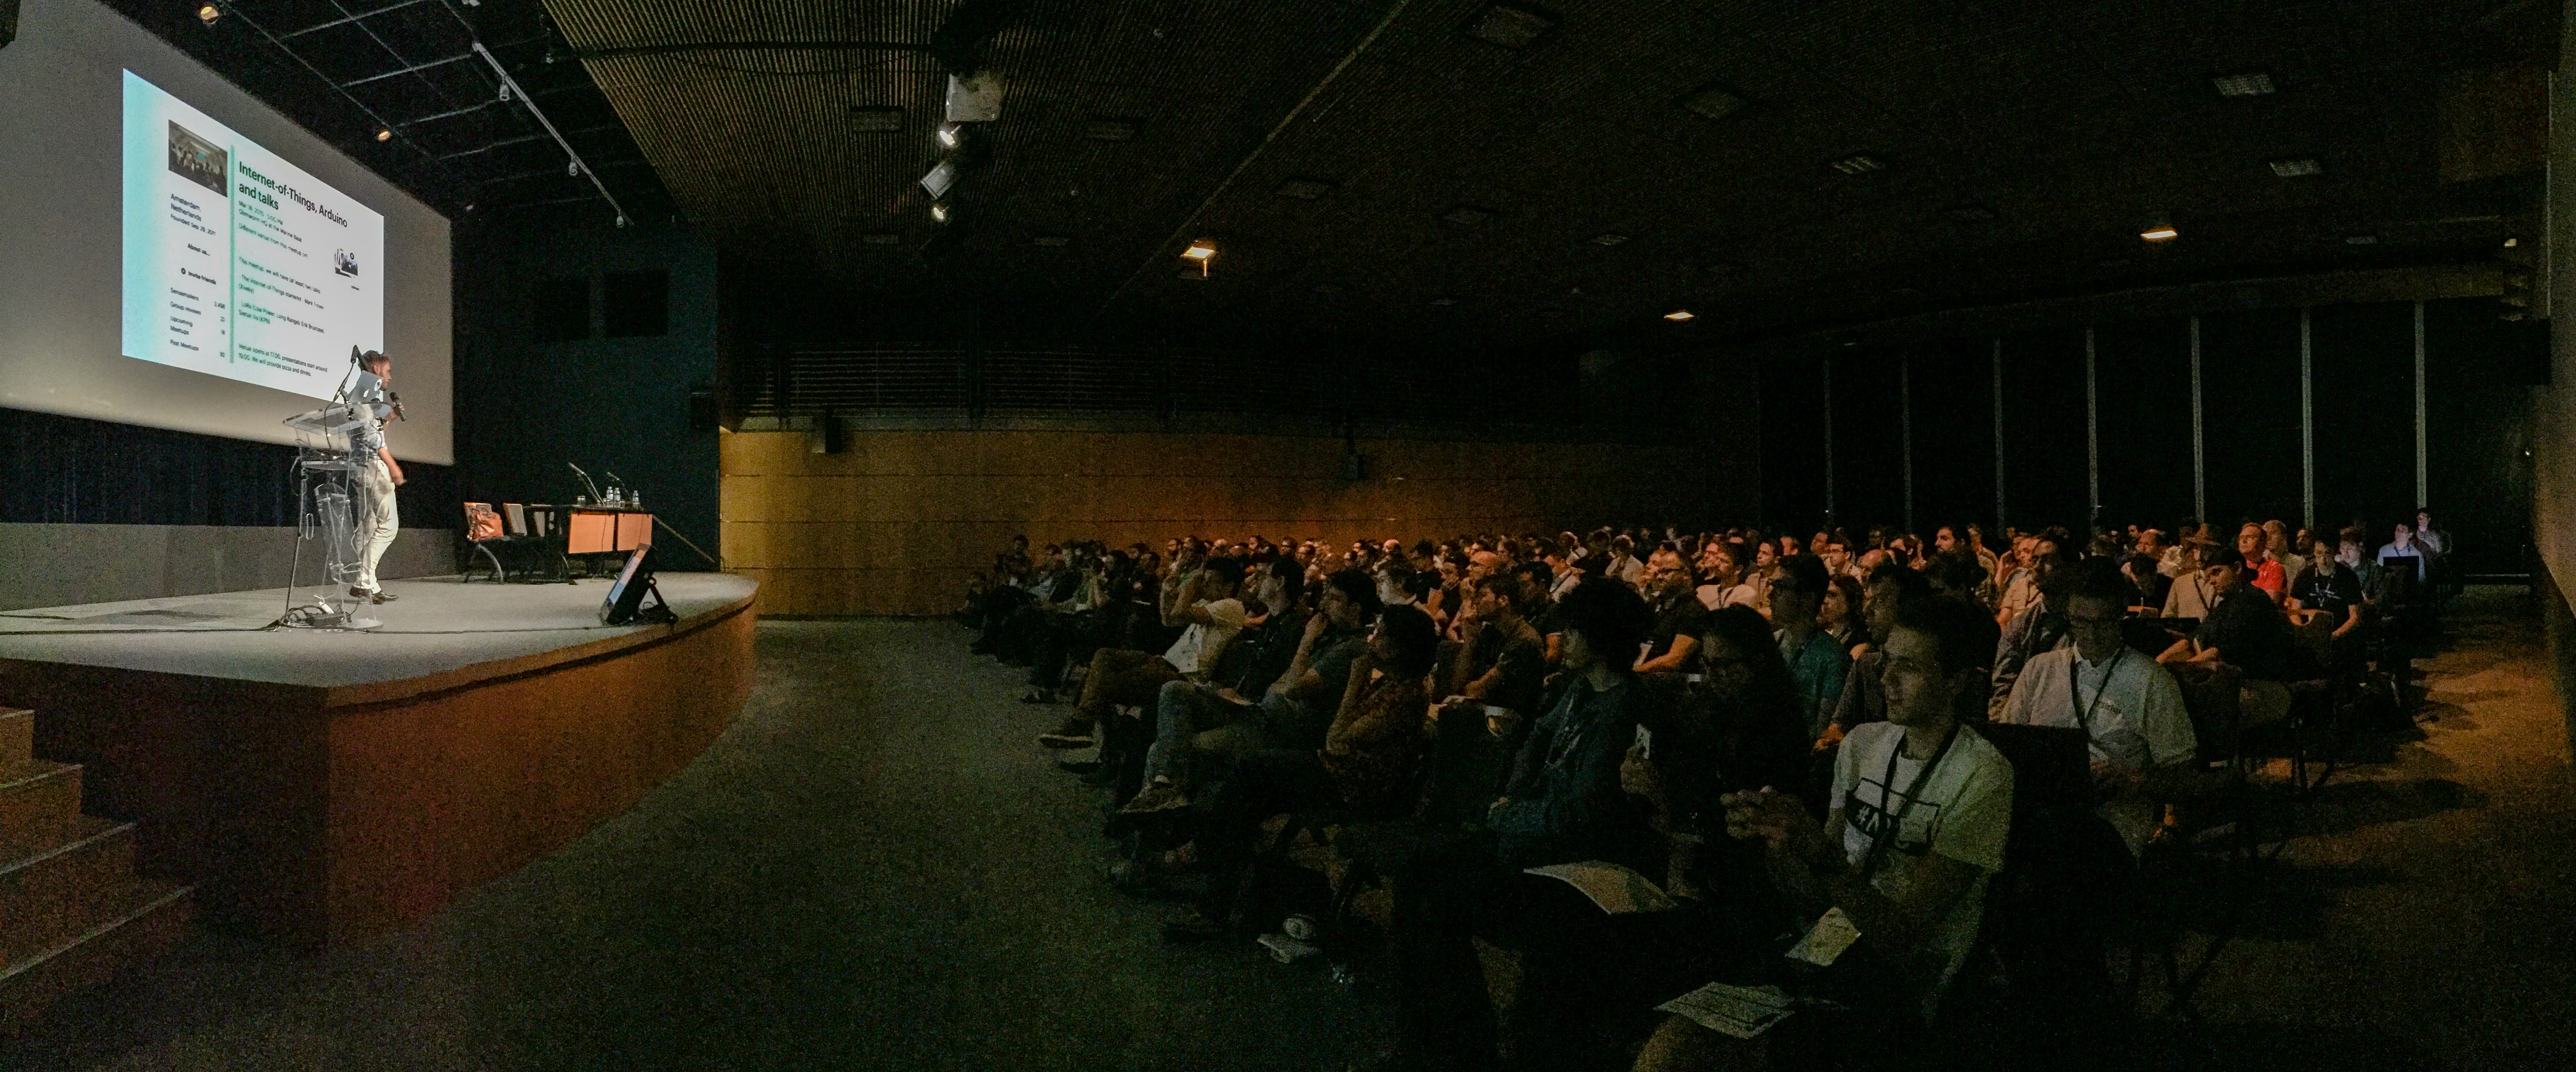 Picture taken during the Keynote